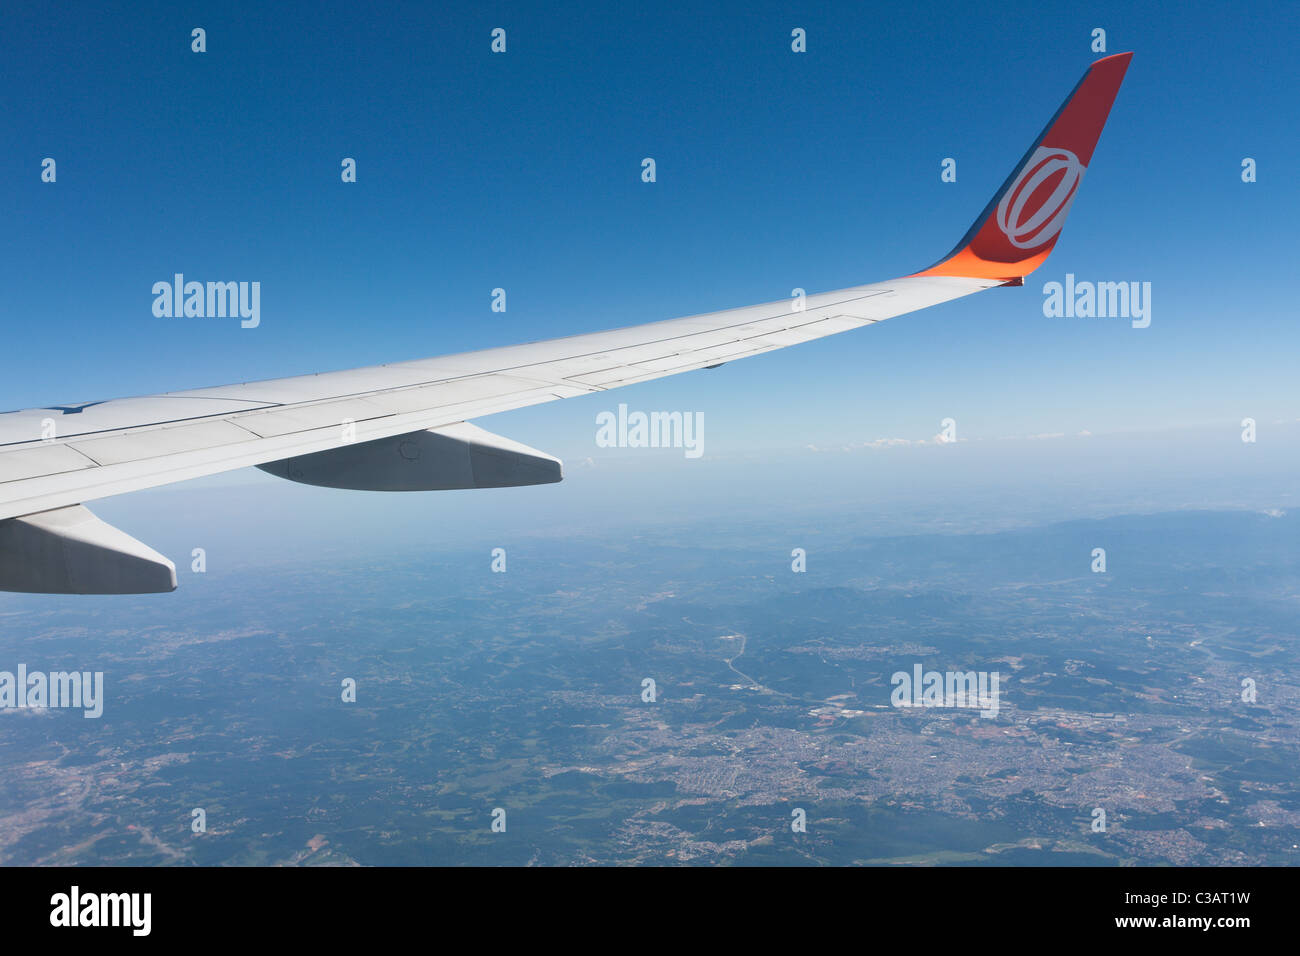 Boeing 737-800 aircraft winglet against blue sky, Carapicuiba and Barueri municipalities aerial view from Gol airline - Stock Image